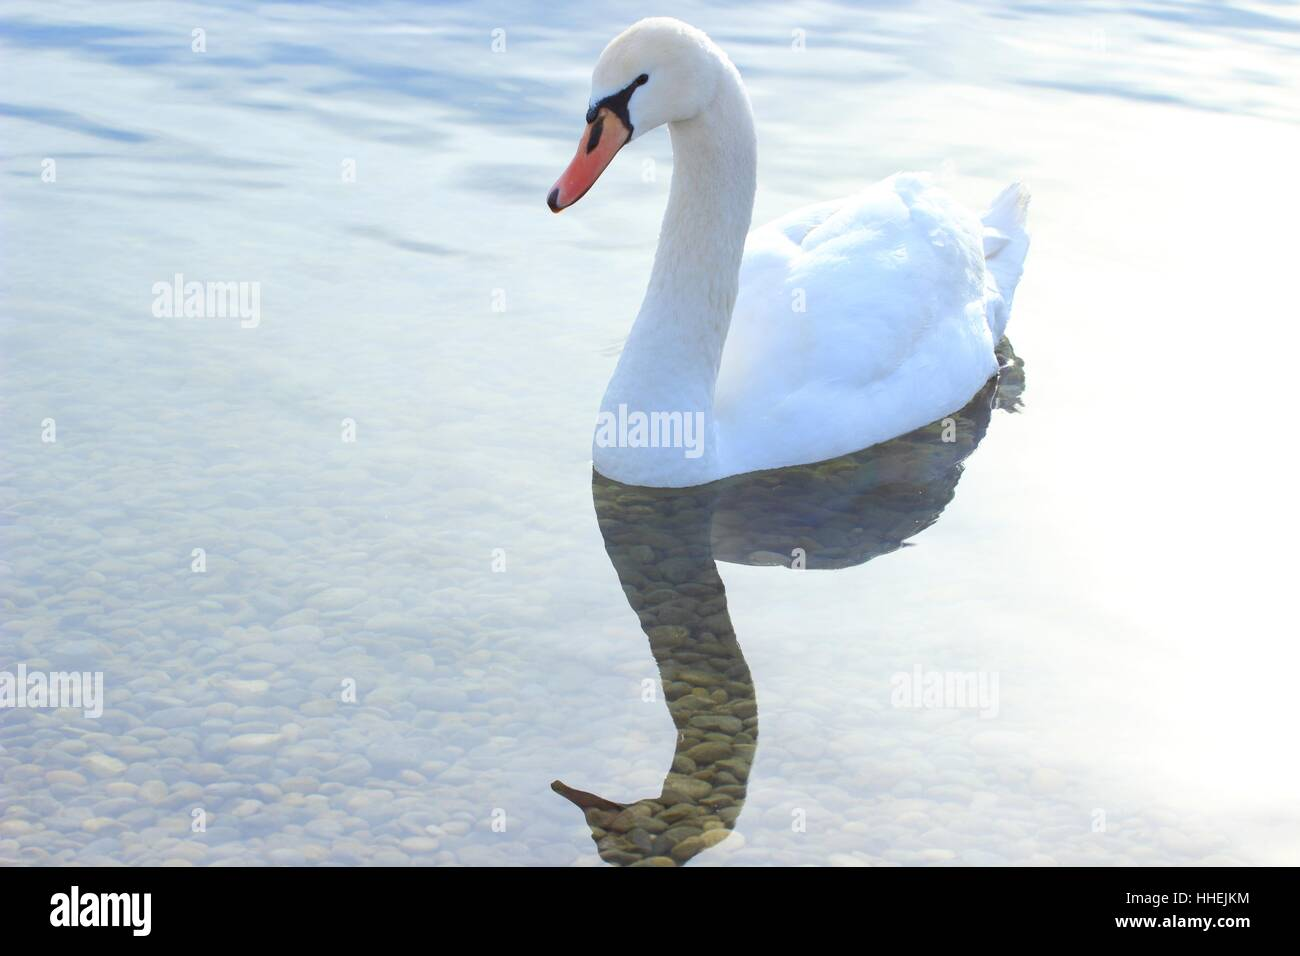 Swan on the water - Stock Image